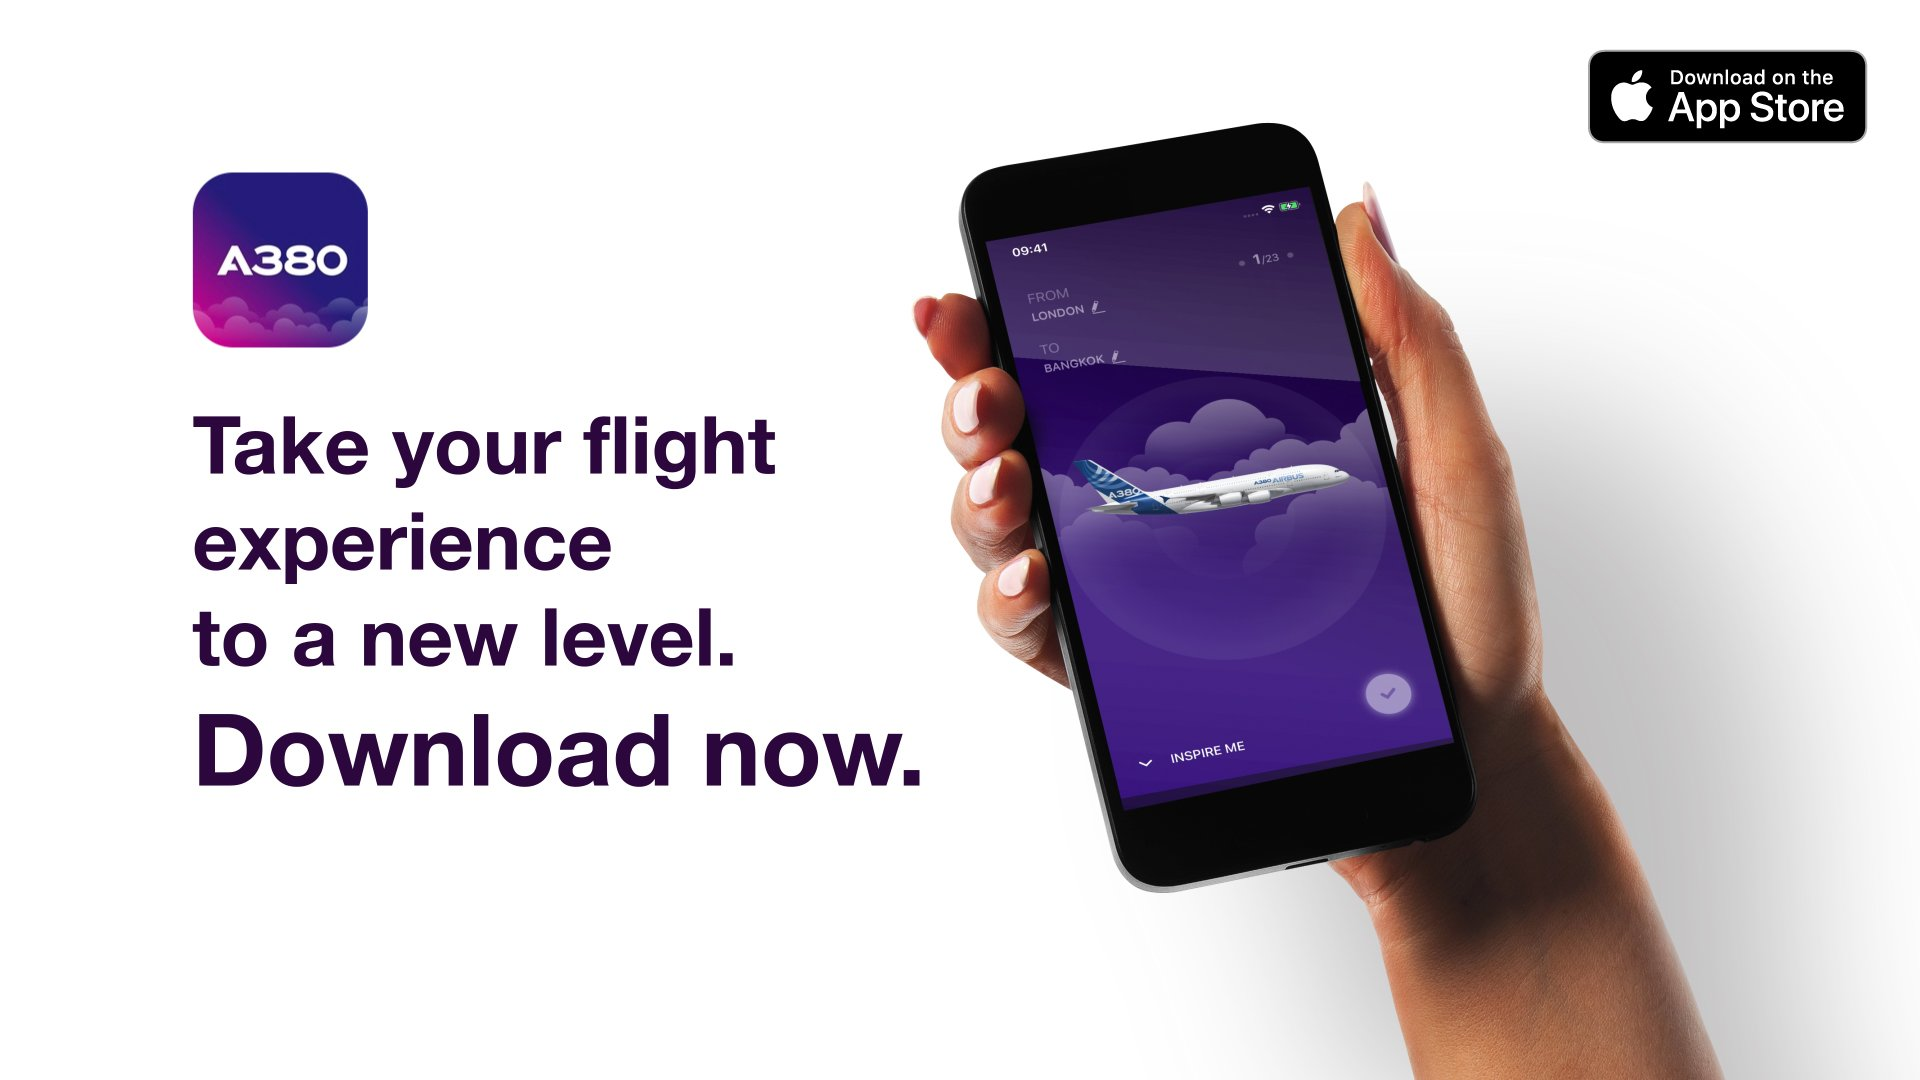 With the iflyA380 app, world travellers can book a flight aboard Airbus' flagship A380 jetliner and interact with the aircraft in amazing augmented reality once en route to world-class destinations